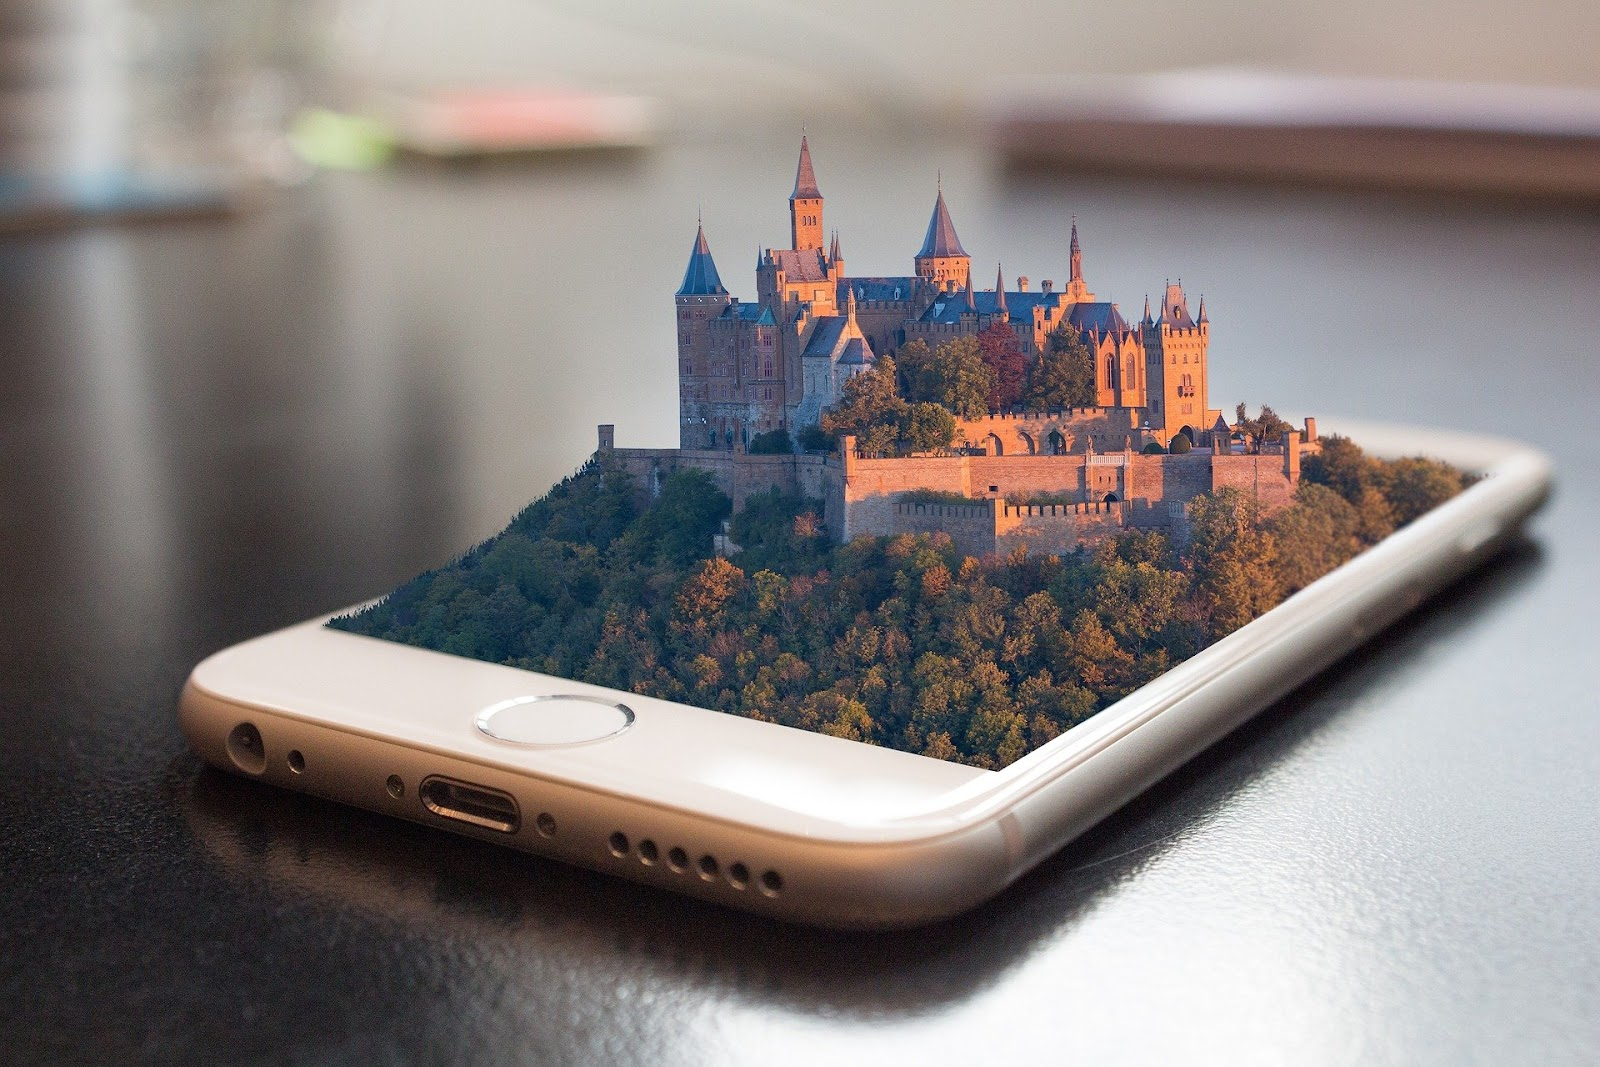 smartphone lying flat on a table with a computer-generated 3D image of a castle rising above the surface